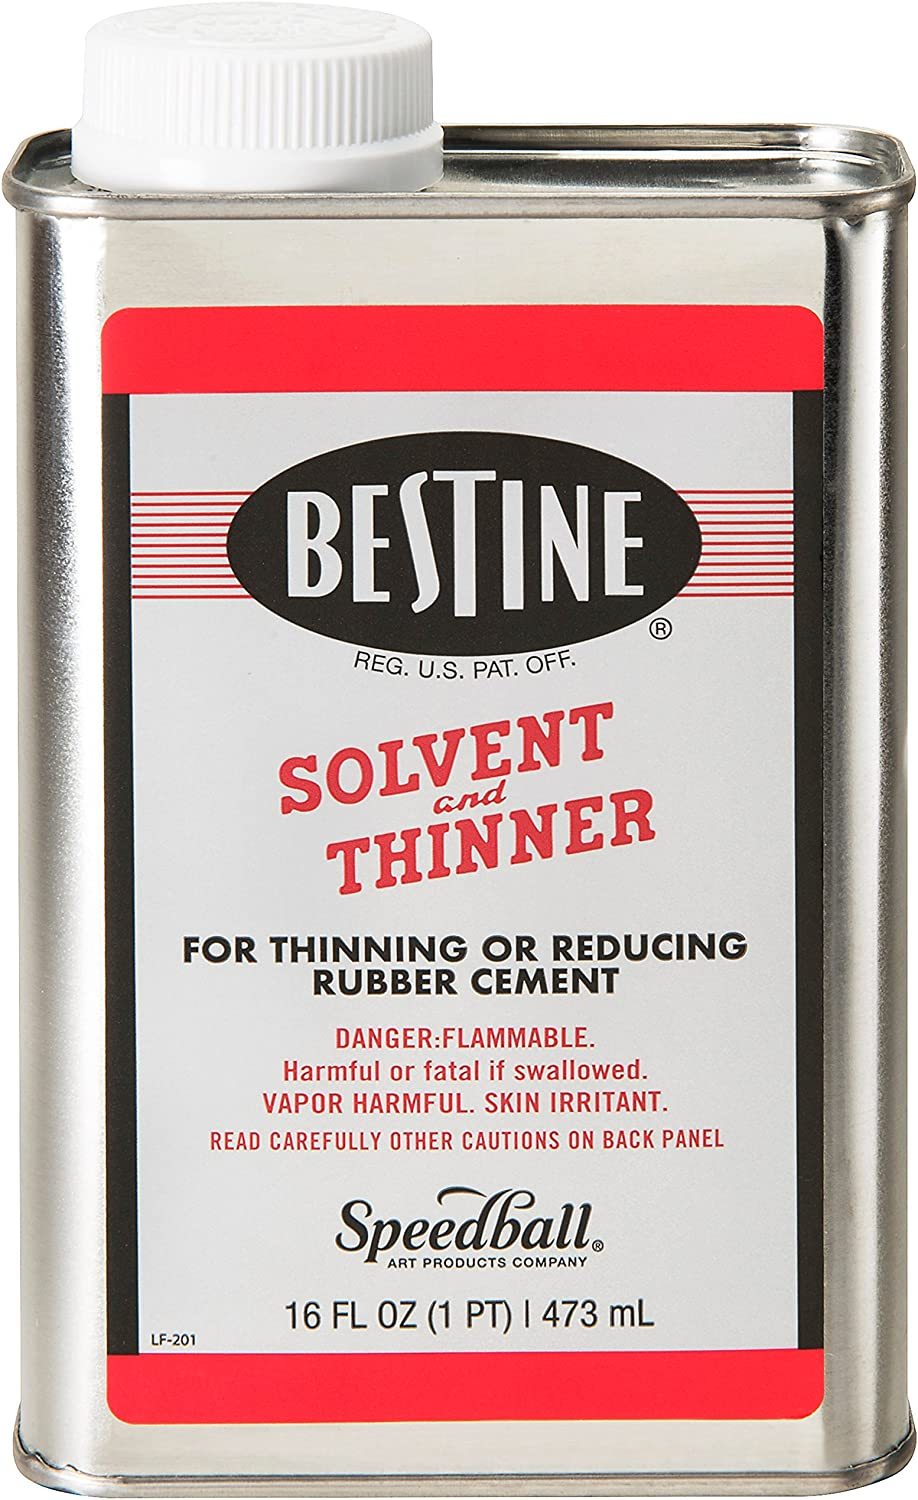 Bestine Max 77% OFF Solvent and Thinner for store Cement – Rubber Ink Cleans